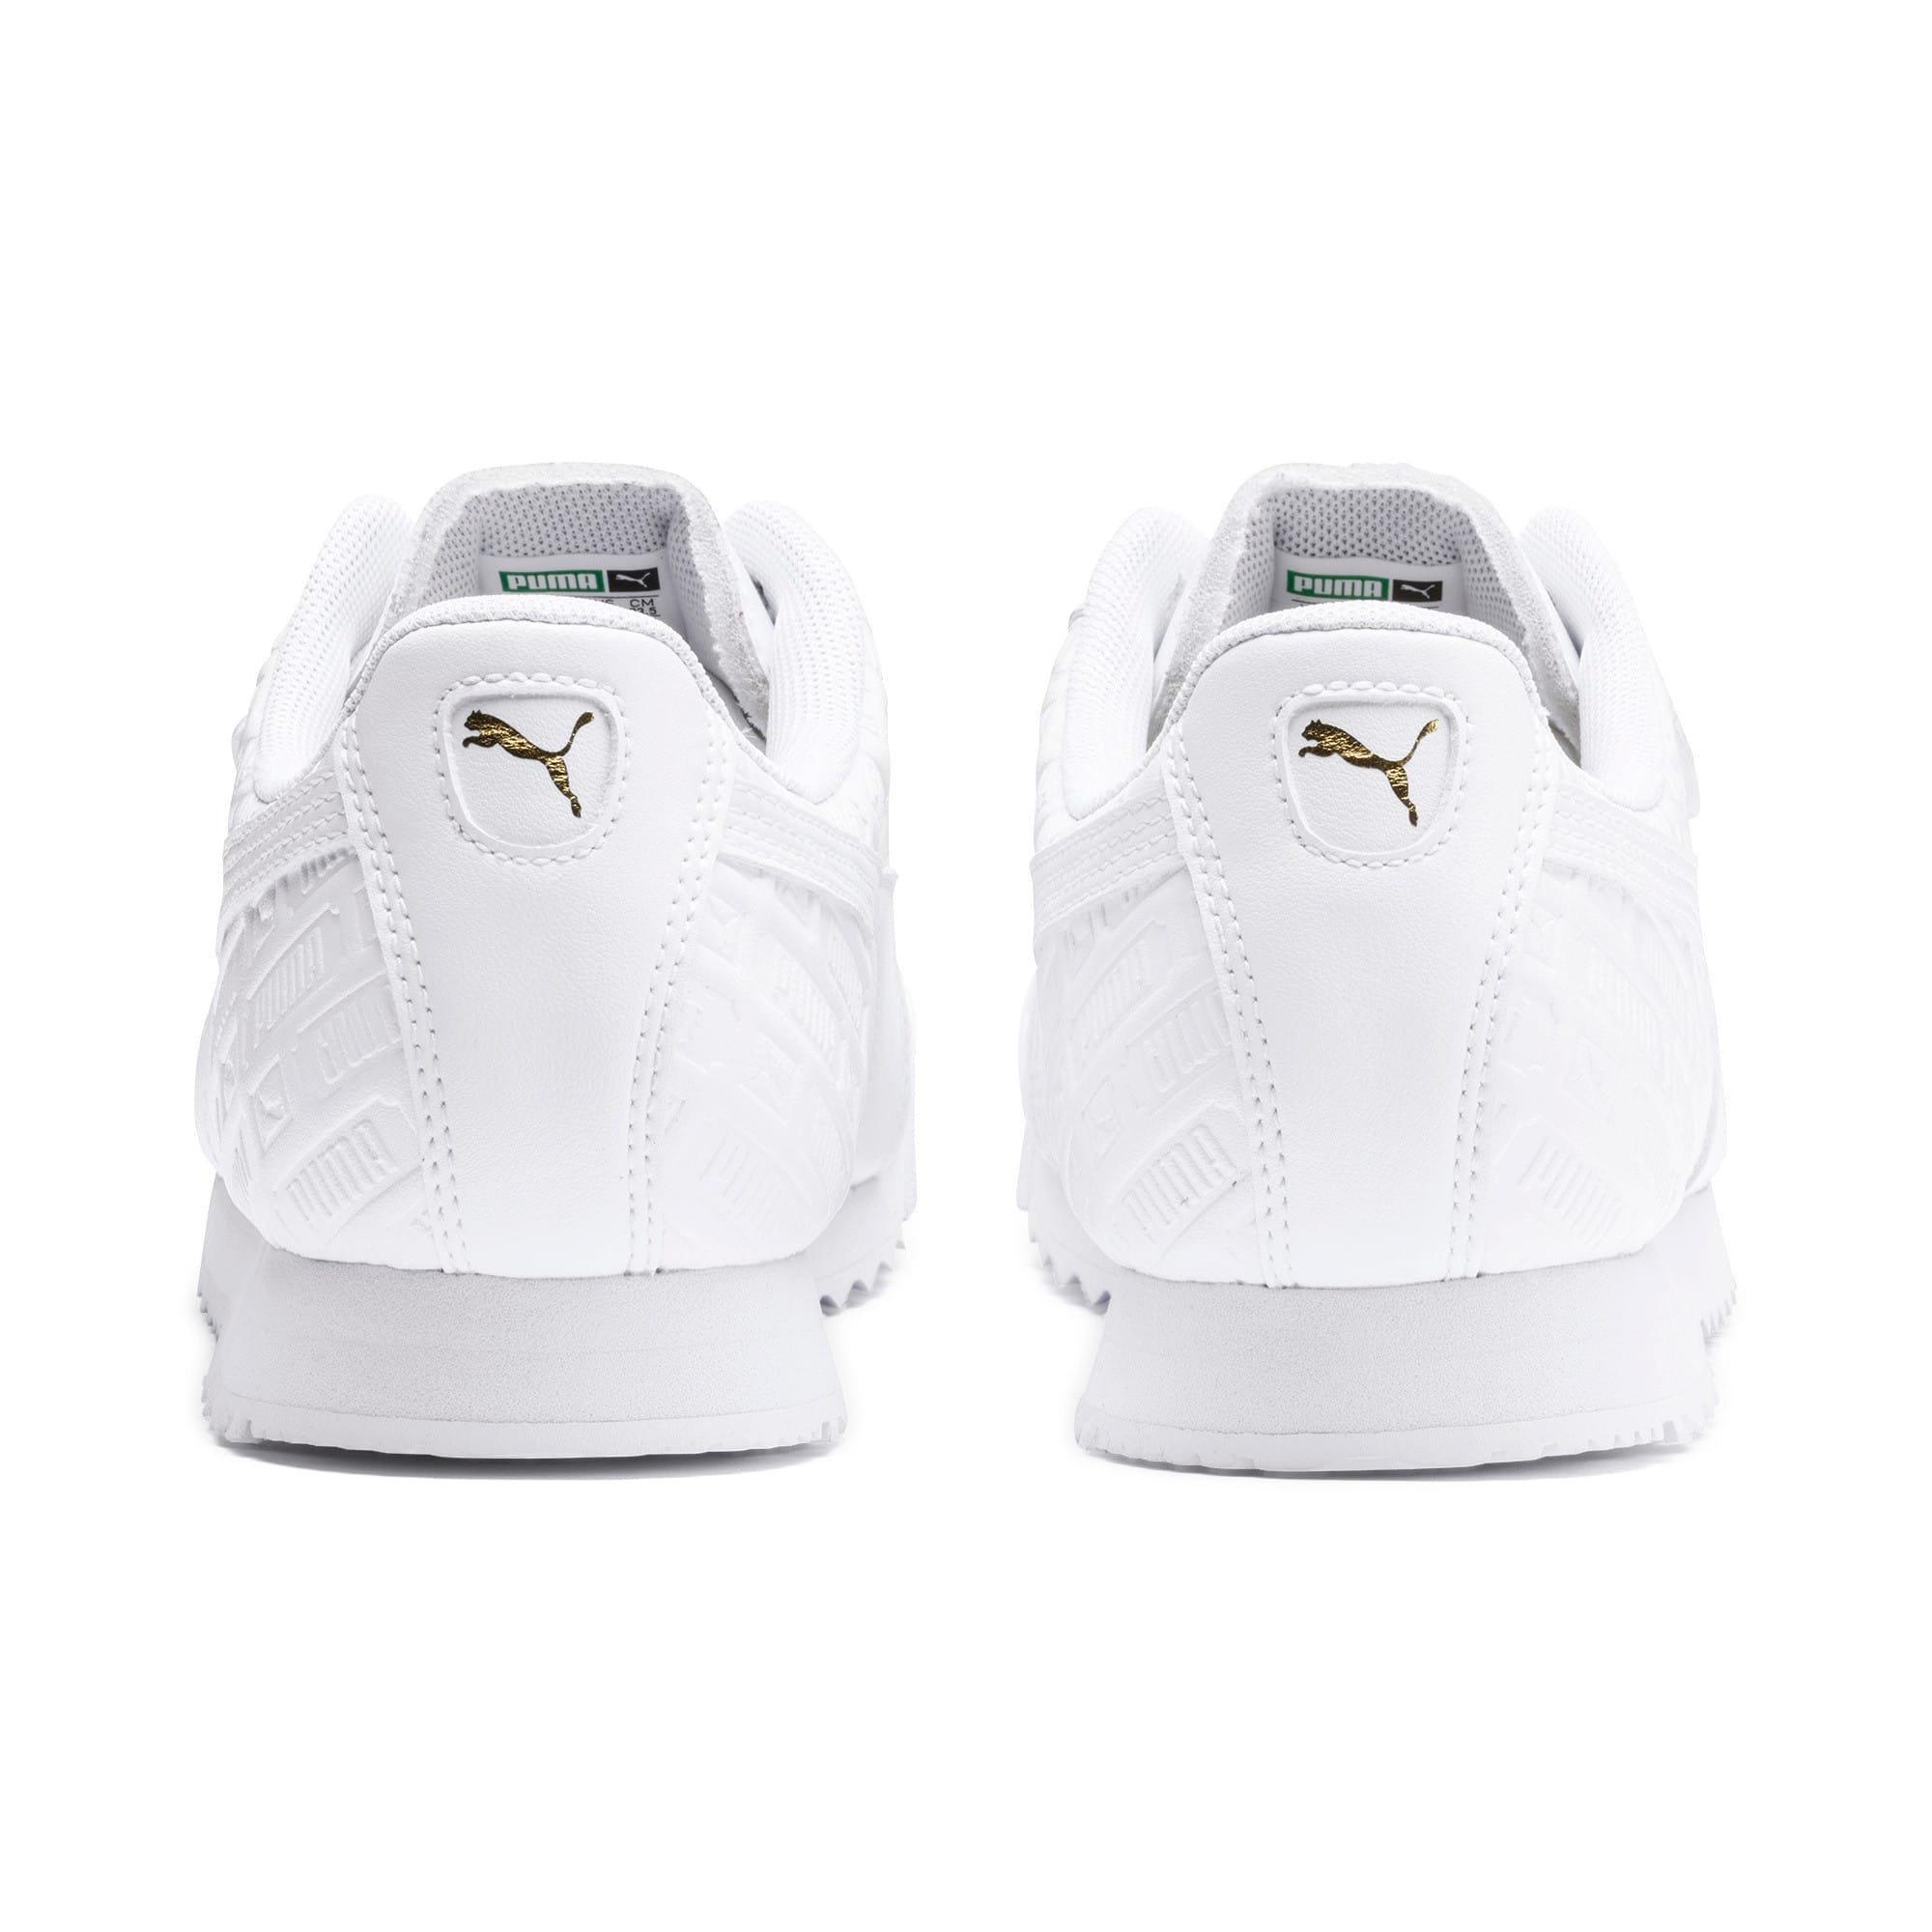 Roma Reinvent Women's Sneakers, Puma White-Puma Team Gold, large